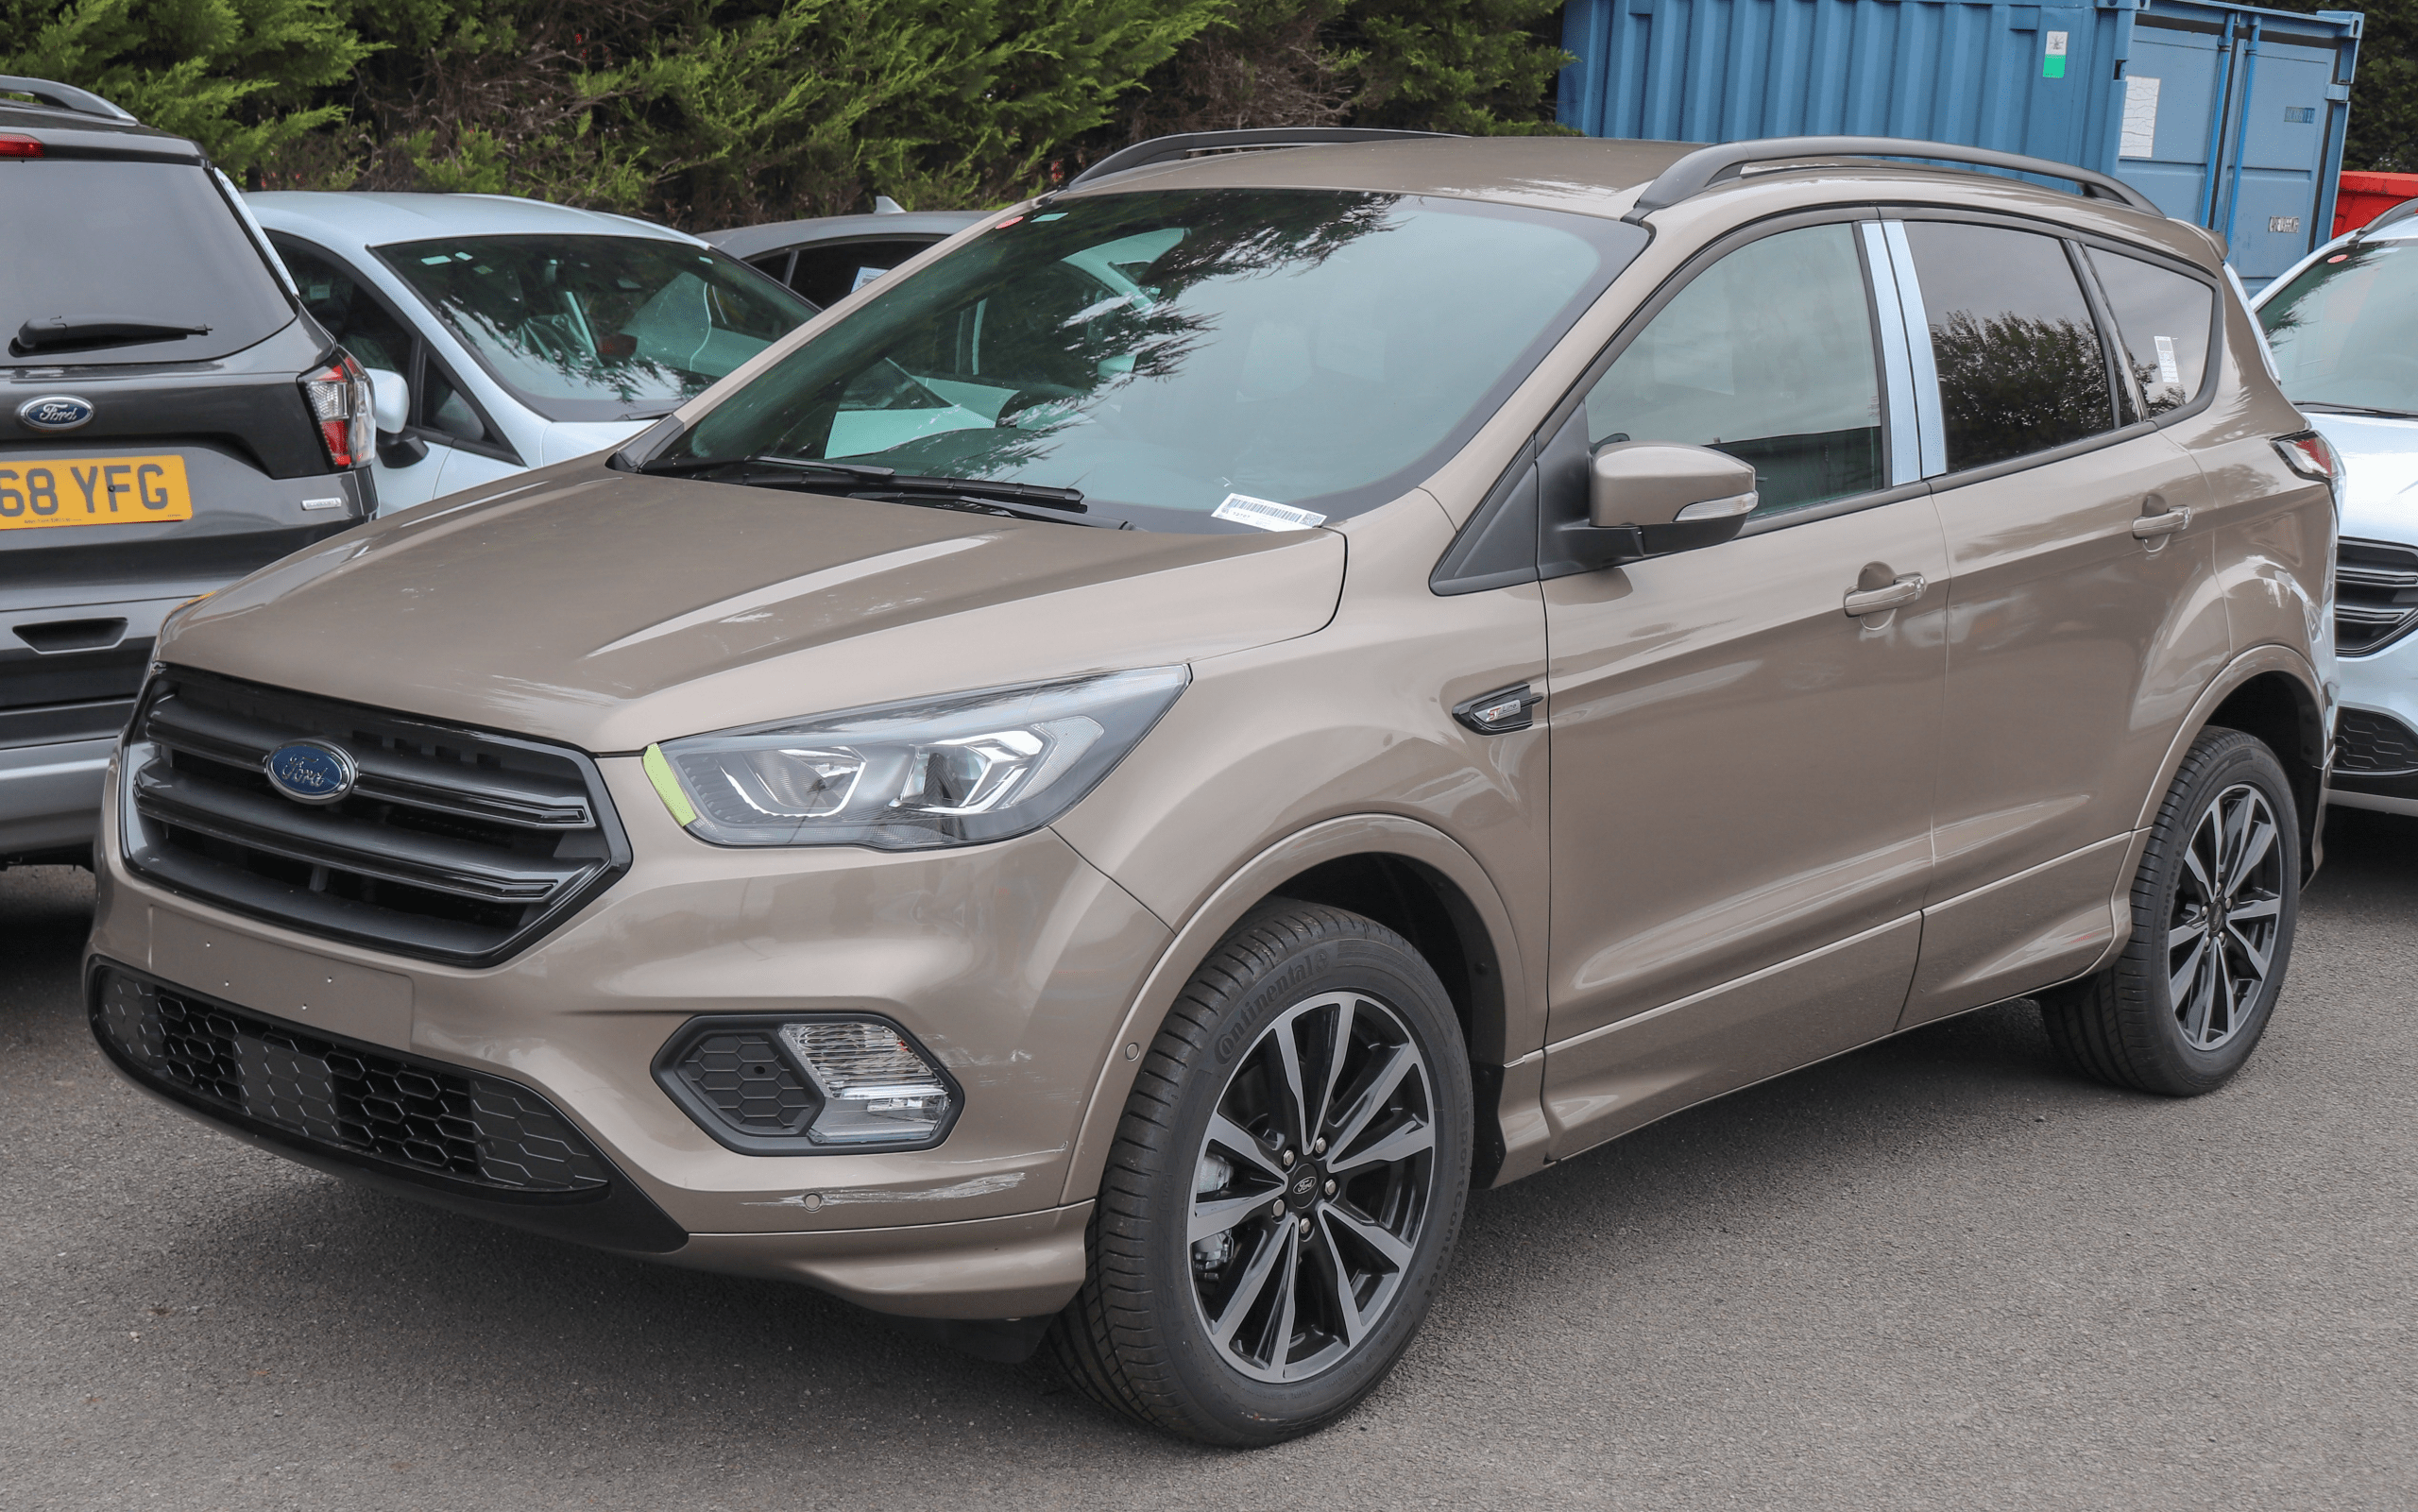 2020 Mazda Cx 9 Redesign And Concept In 2020 Ford Kuga Mazda Cx 9 Ford Explorer Reviews